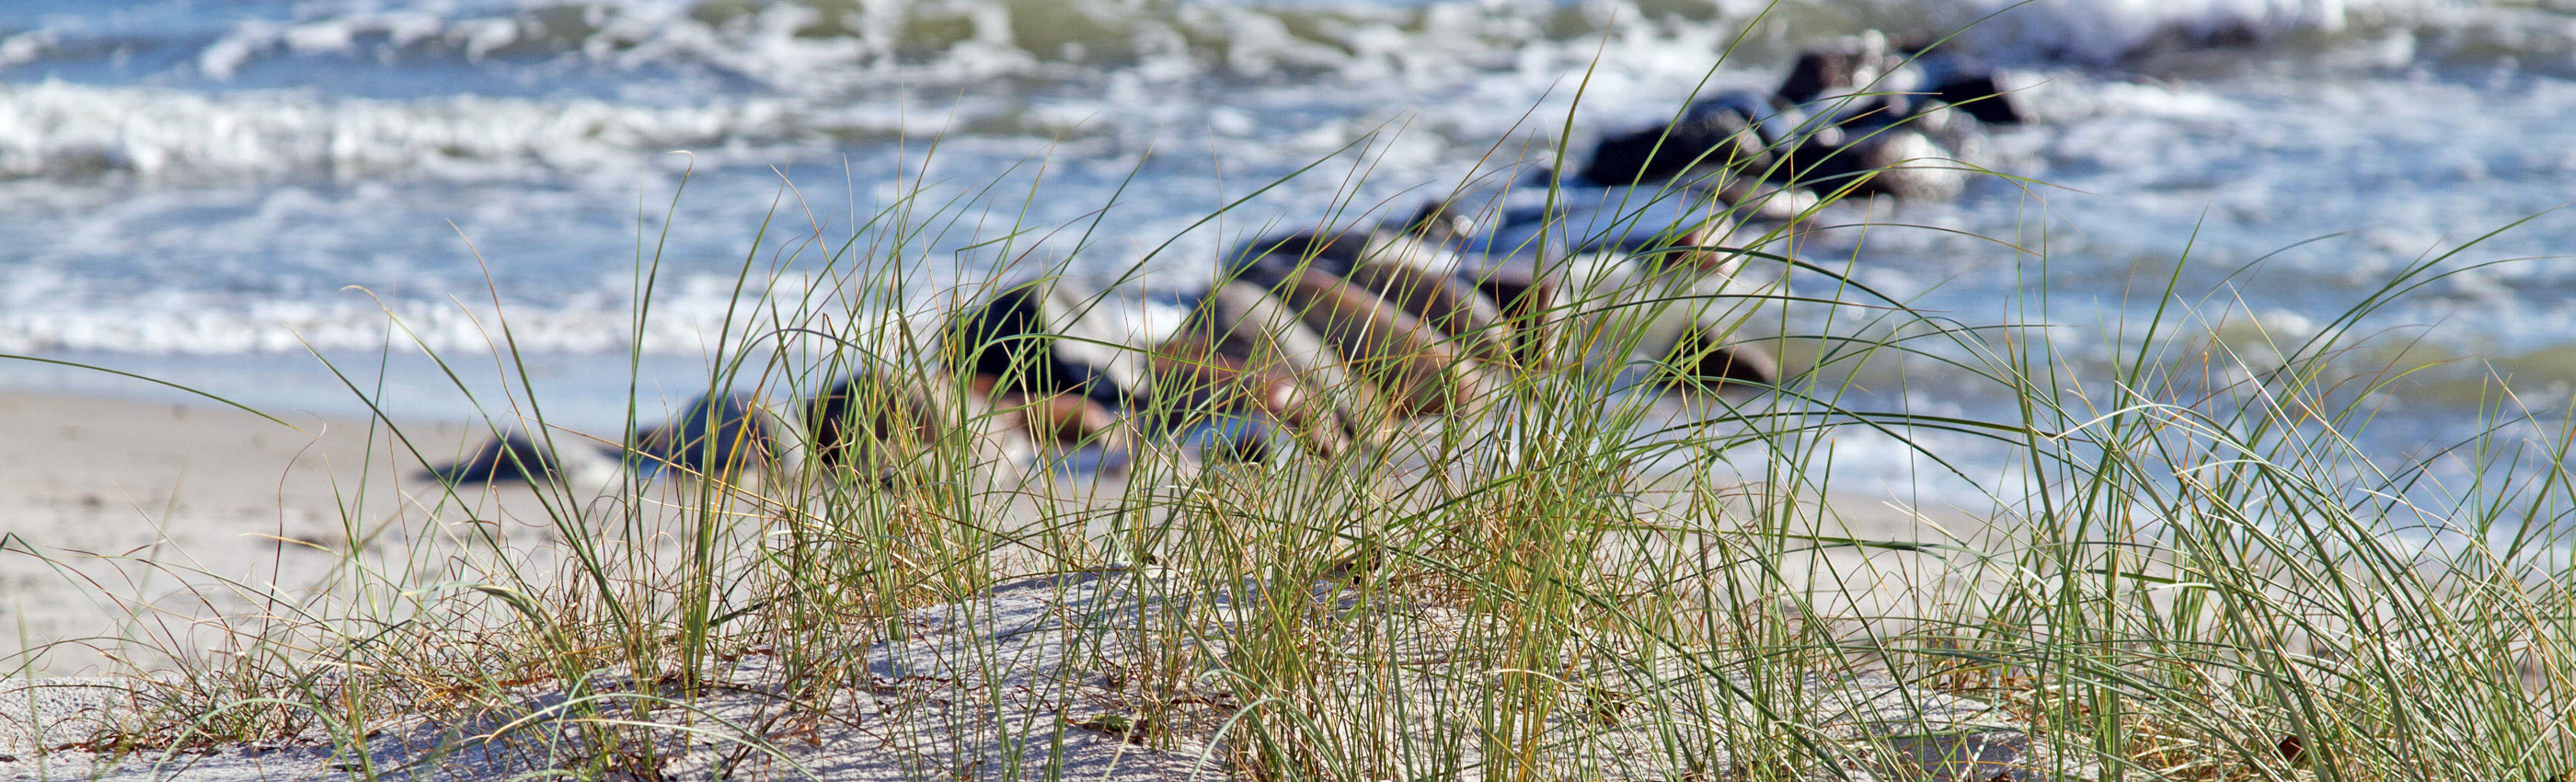 Header Strand 1082 Kollenberg RE bearb 2800x850px